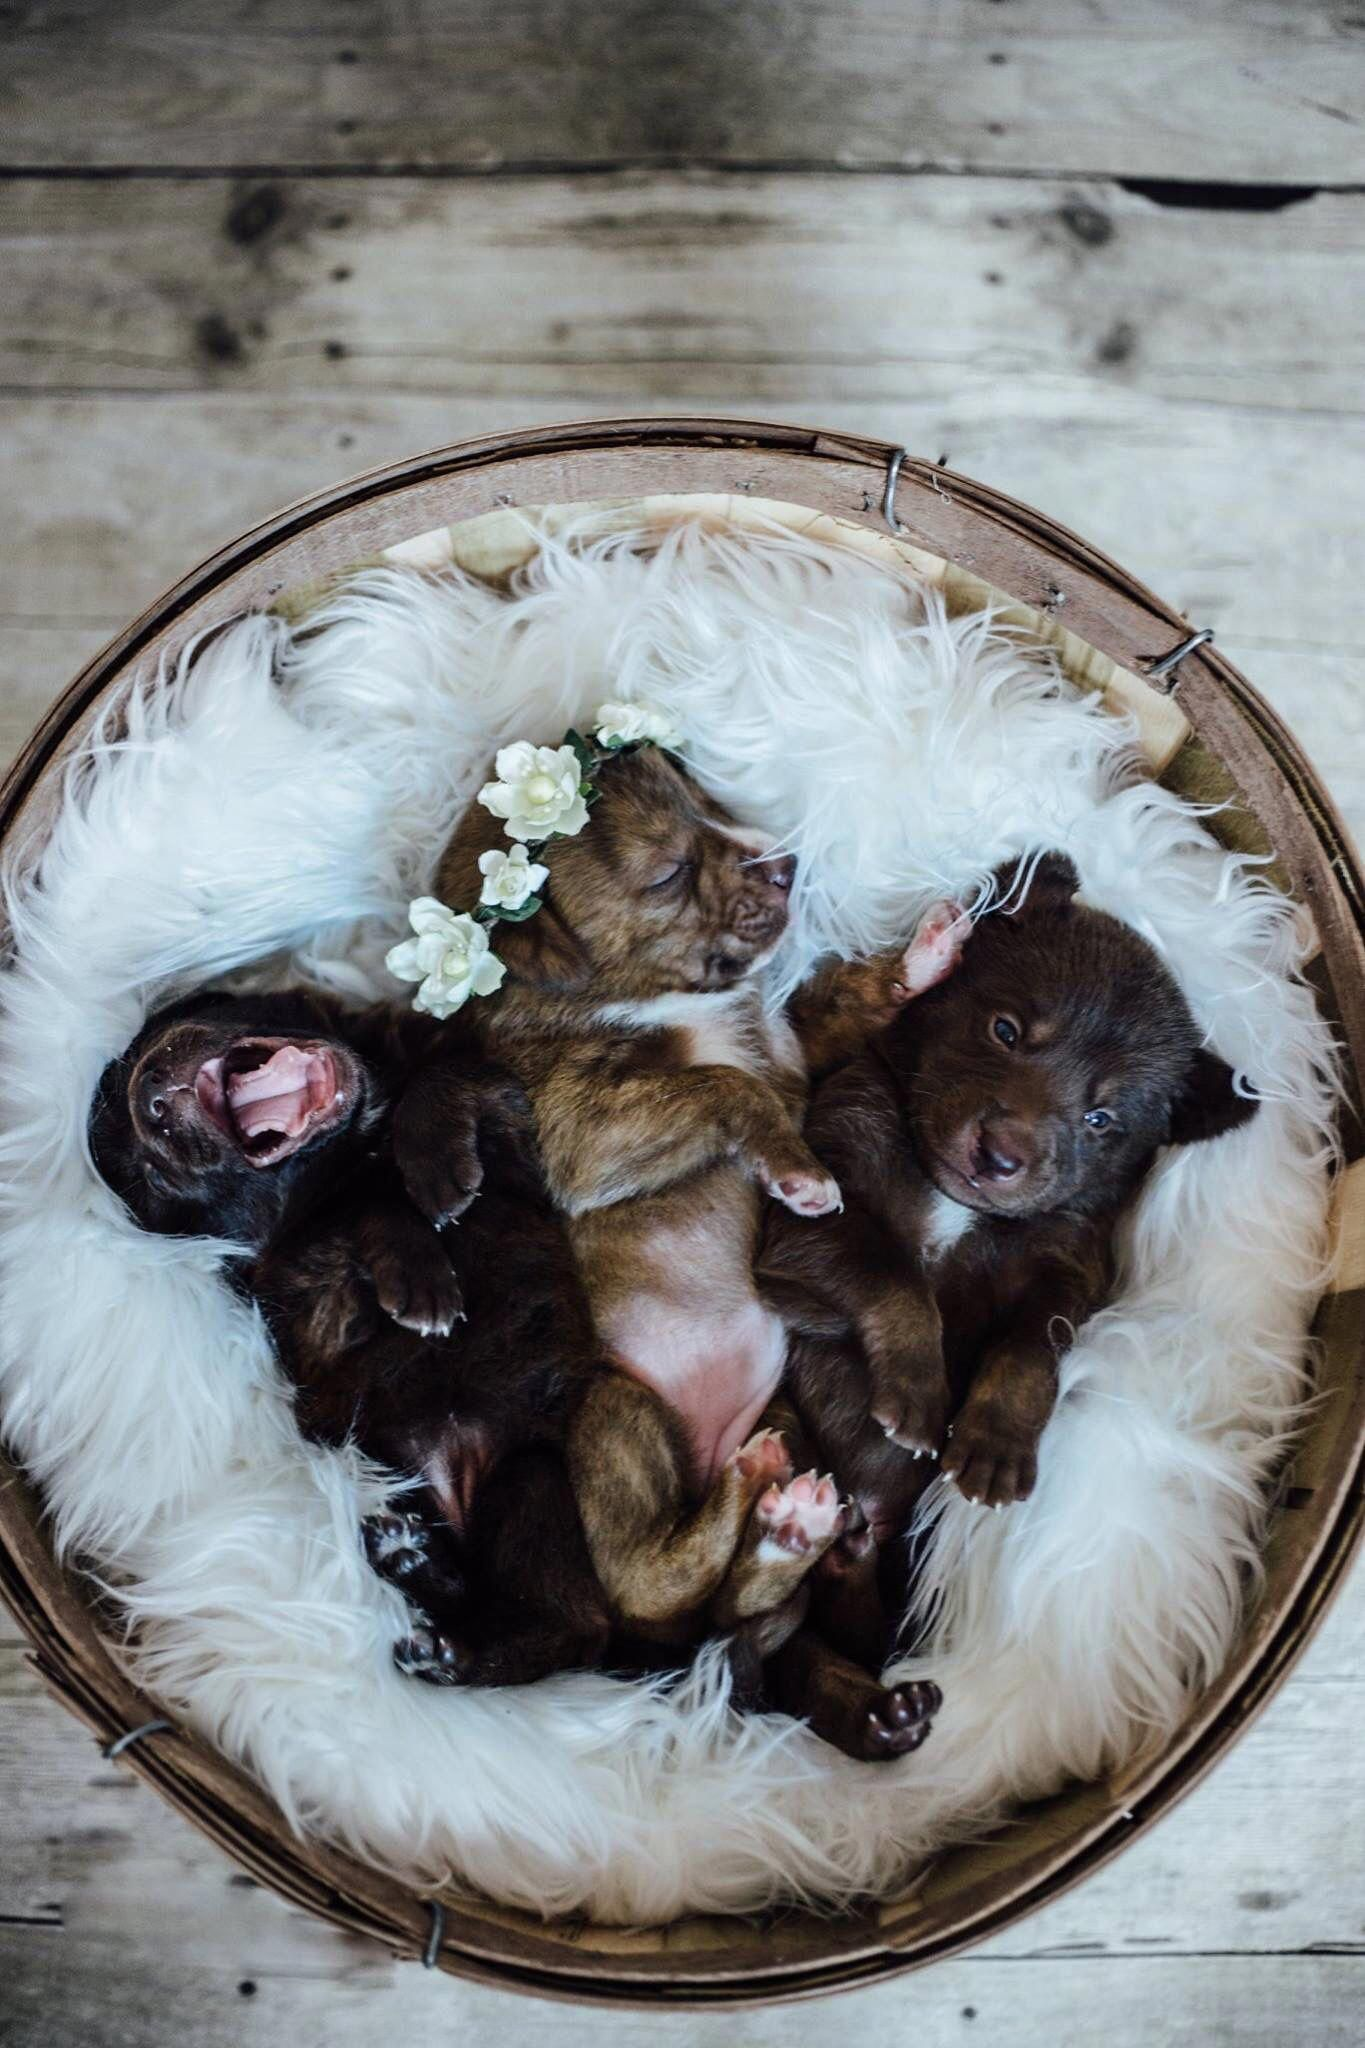 Awesome Pregnant Info Are Readily Available On Our Site Read More And You Will Not Be Sorry You Did Newborn Puppies Puppy Photos Pregnant Dog